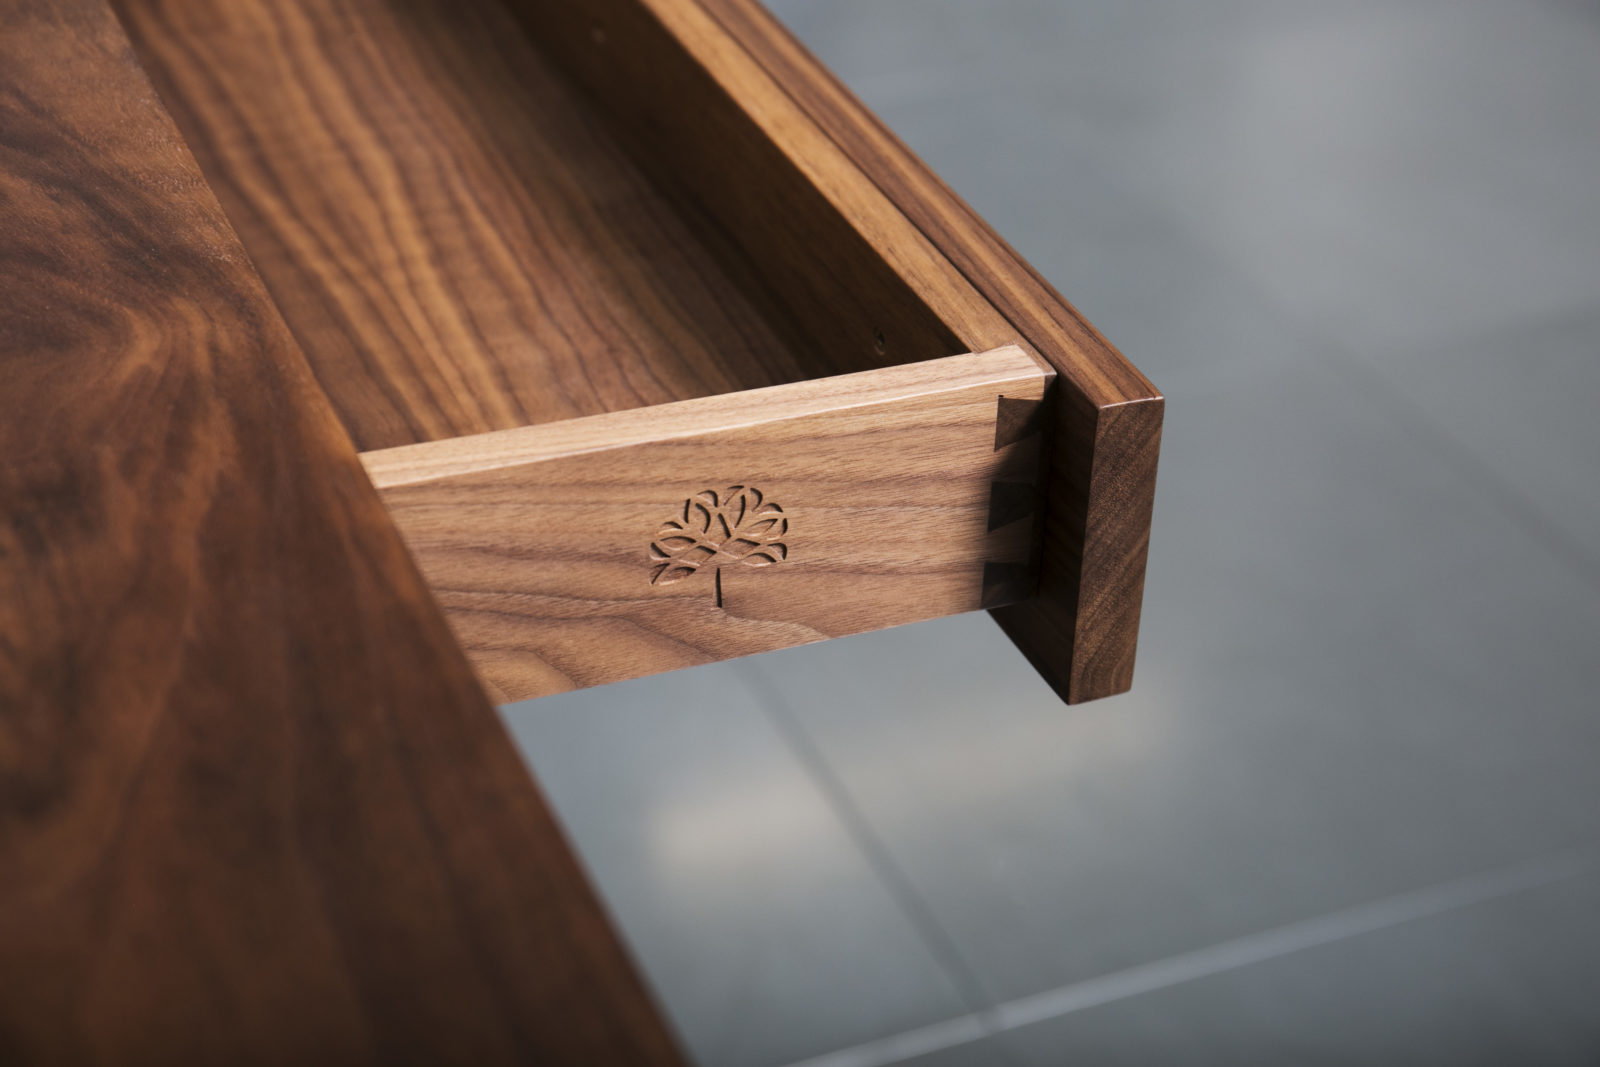 Solid walnut drawer with dovetail detail and engraved motif